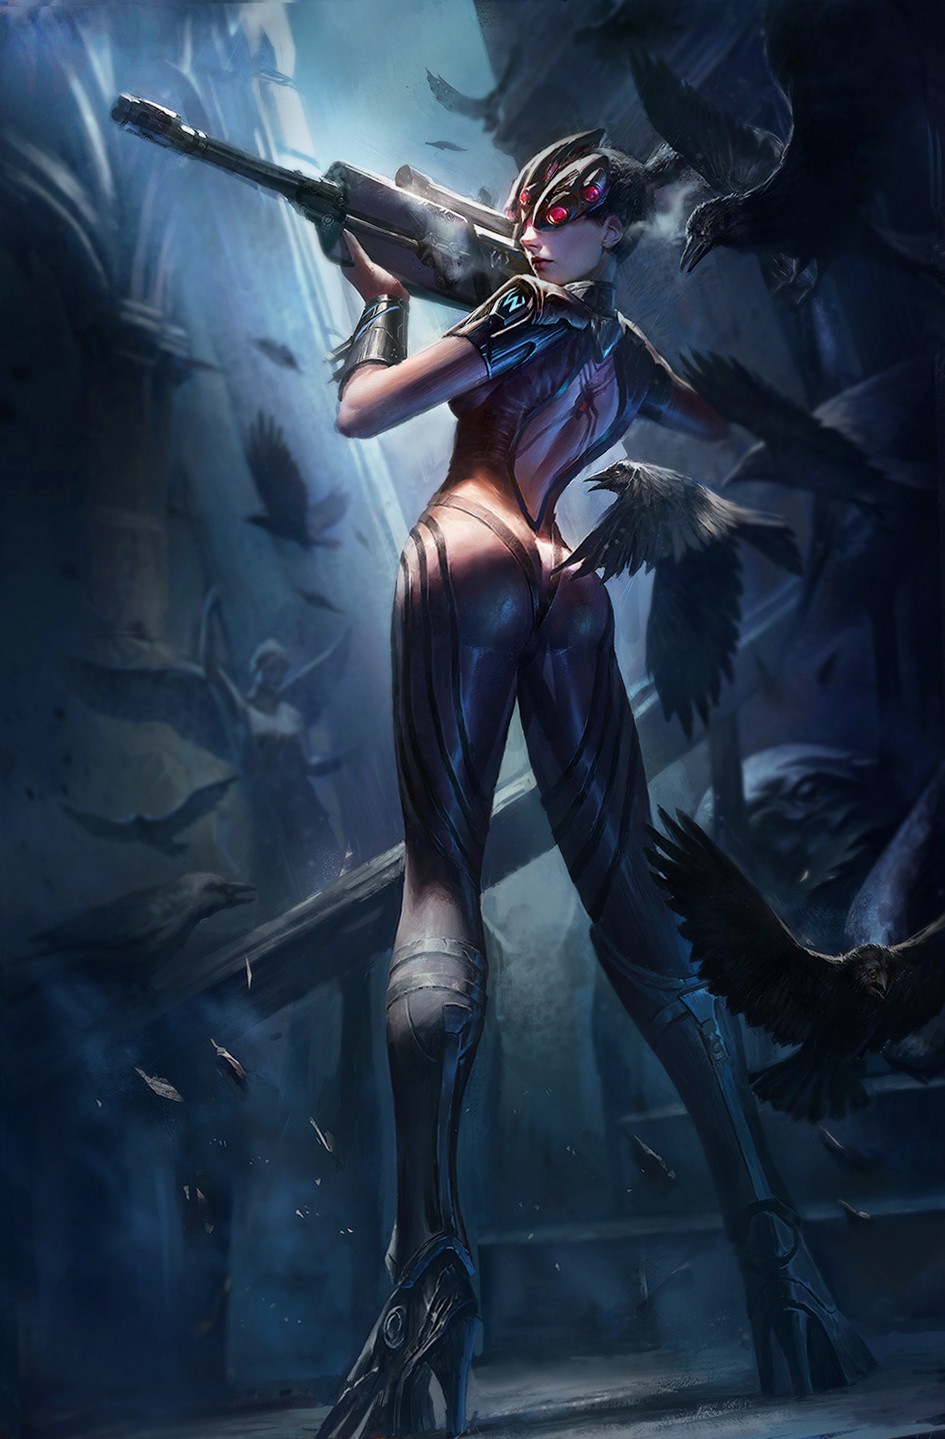 1girl ass back_tattoo bird bodysuit breath chinese_commentary crow gun head_mounted_display high_heels highres holding holding_gun holding_weapon long_hair looking_at_viewer looking_back overwatch ponytail purple_skin rifle sniper_rifle solo spider_tattoo standing tattoo visor wang_chen weapon widowmaker_(overwatch)